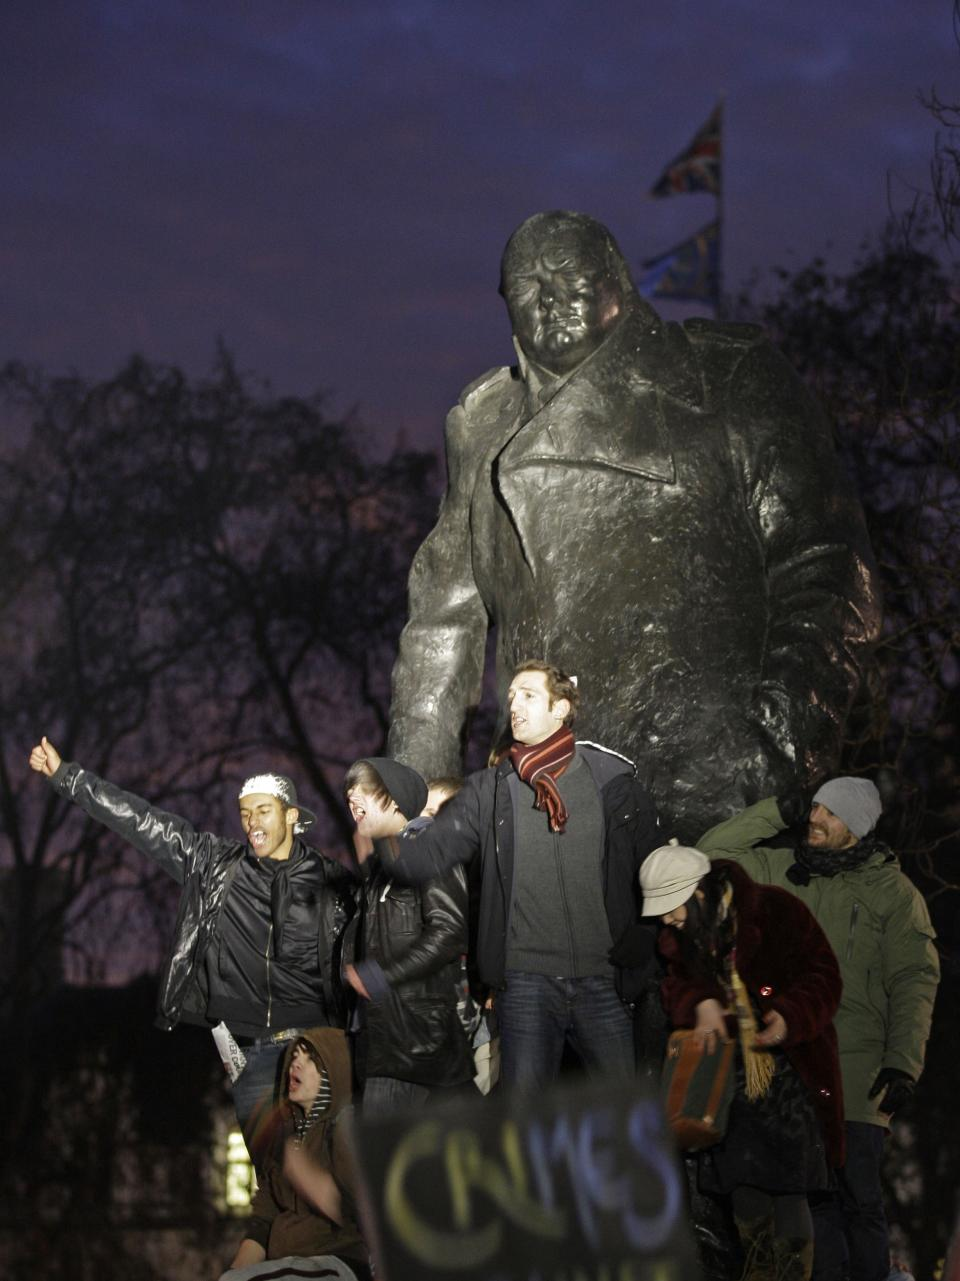 Protesters cry out as they stand on the statue of Winston Churchill at Parliament Square in London, as thousands of students demonstrate outside the Houses of Parliament in a protest against an increase in tuition fees, Thursday, Dec. 9, 2010. The House of Commons is to vote Thursday to increase tuition fees. (AP Photo/Sang Tan)